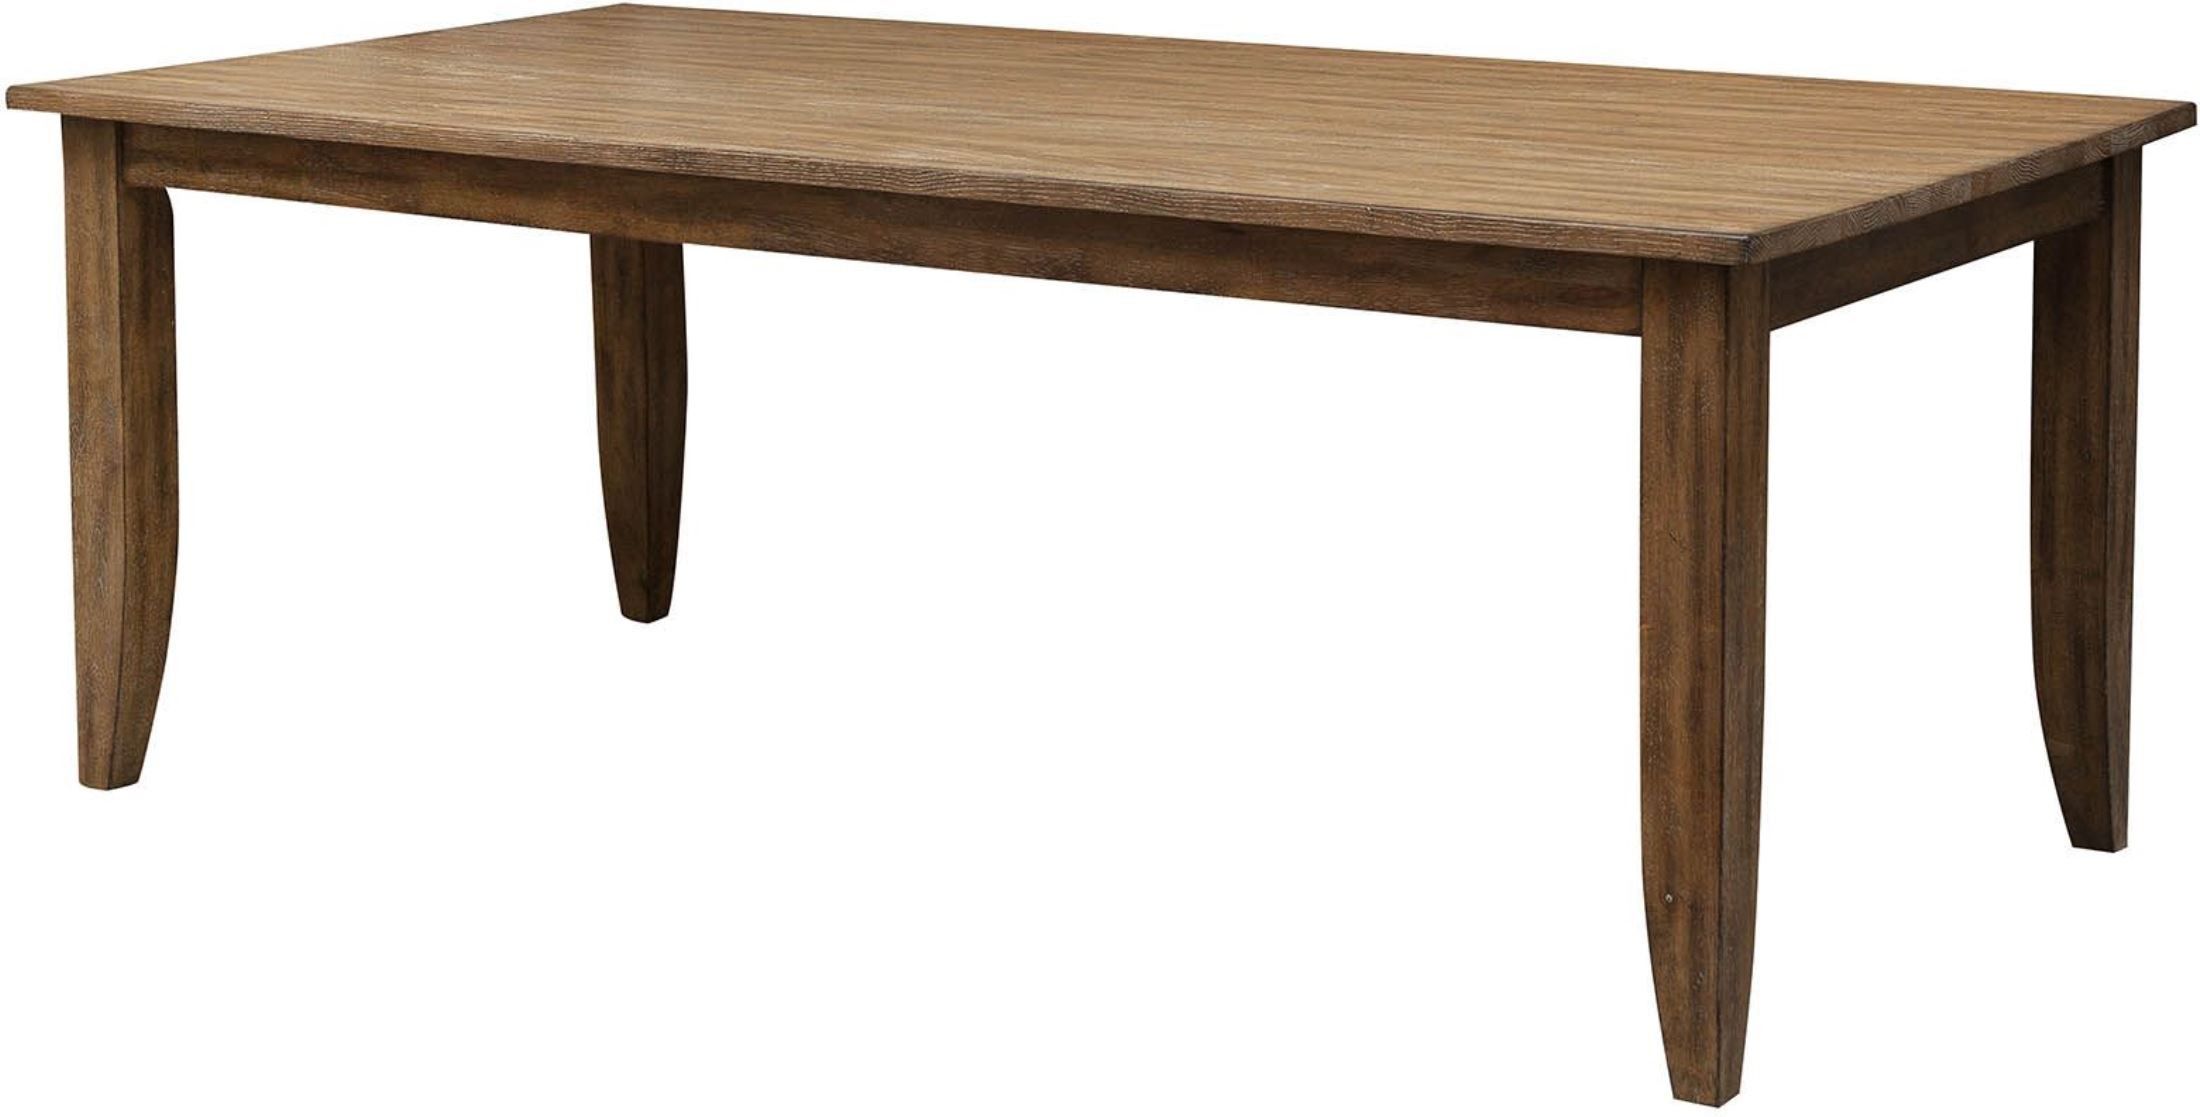 """The Nook Oak 60"""" Rectangular Dining Table From Kincaid"""